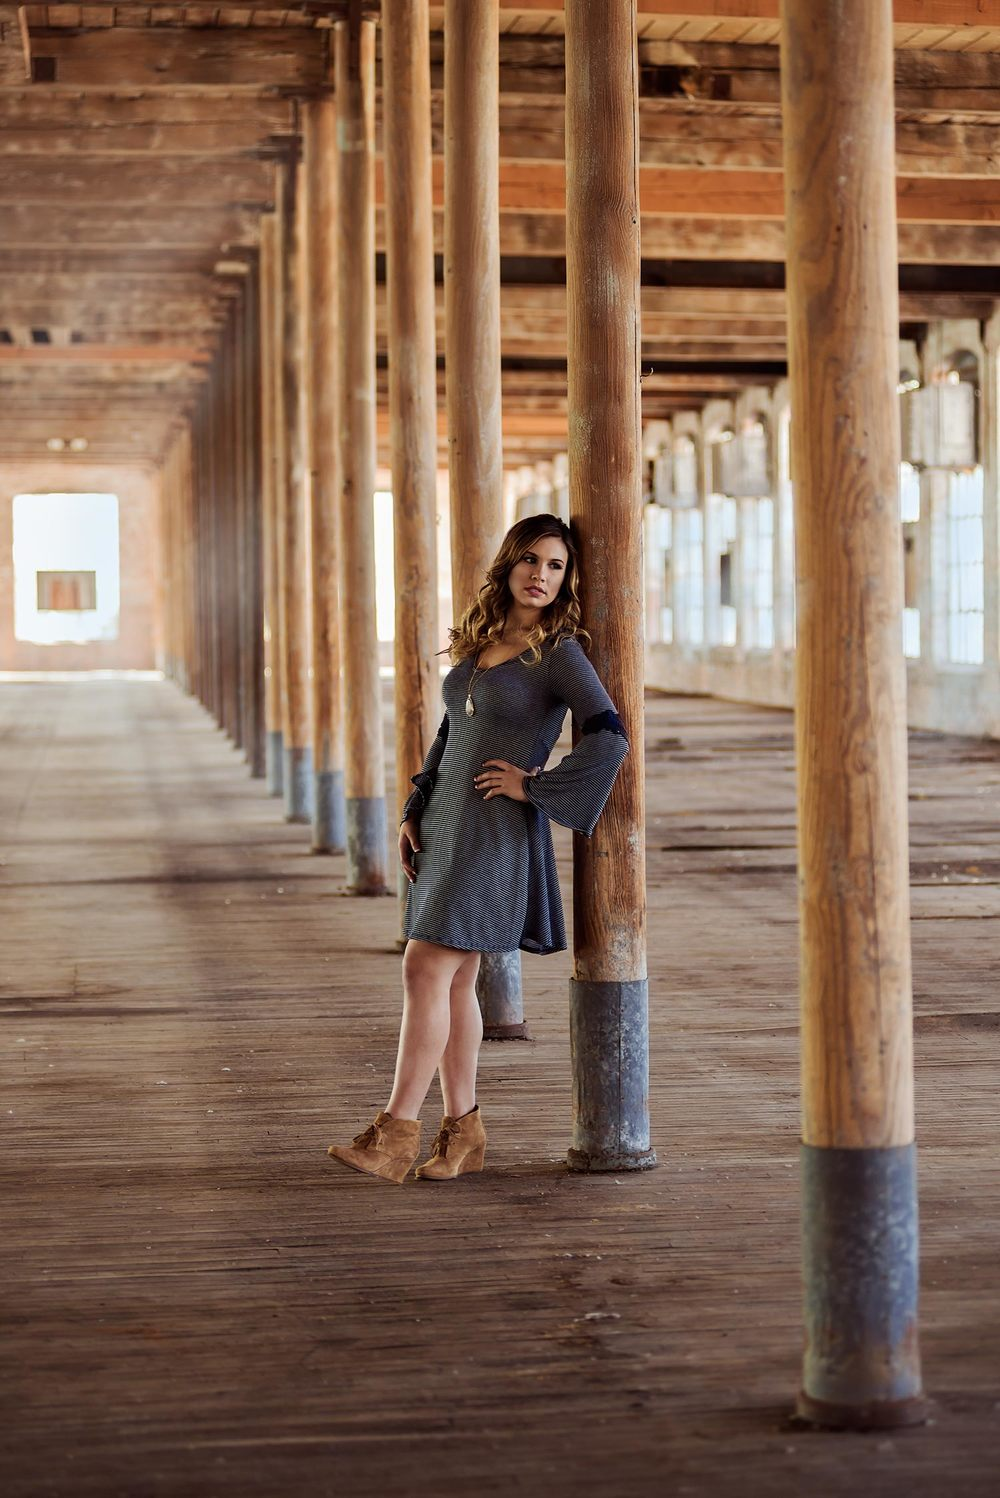 mckinney-cotton-mill-senior-photography.jpg